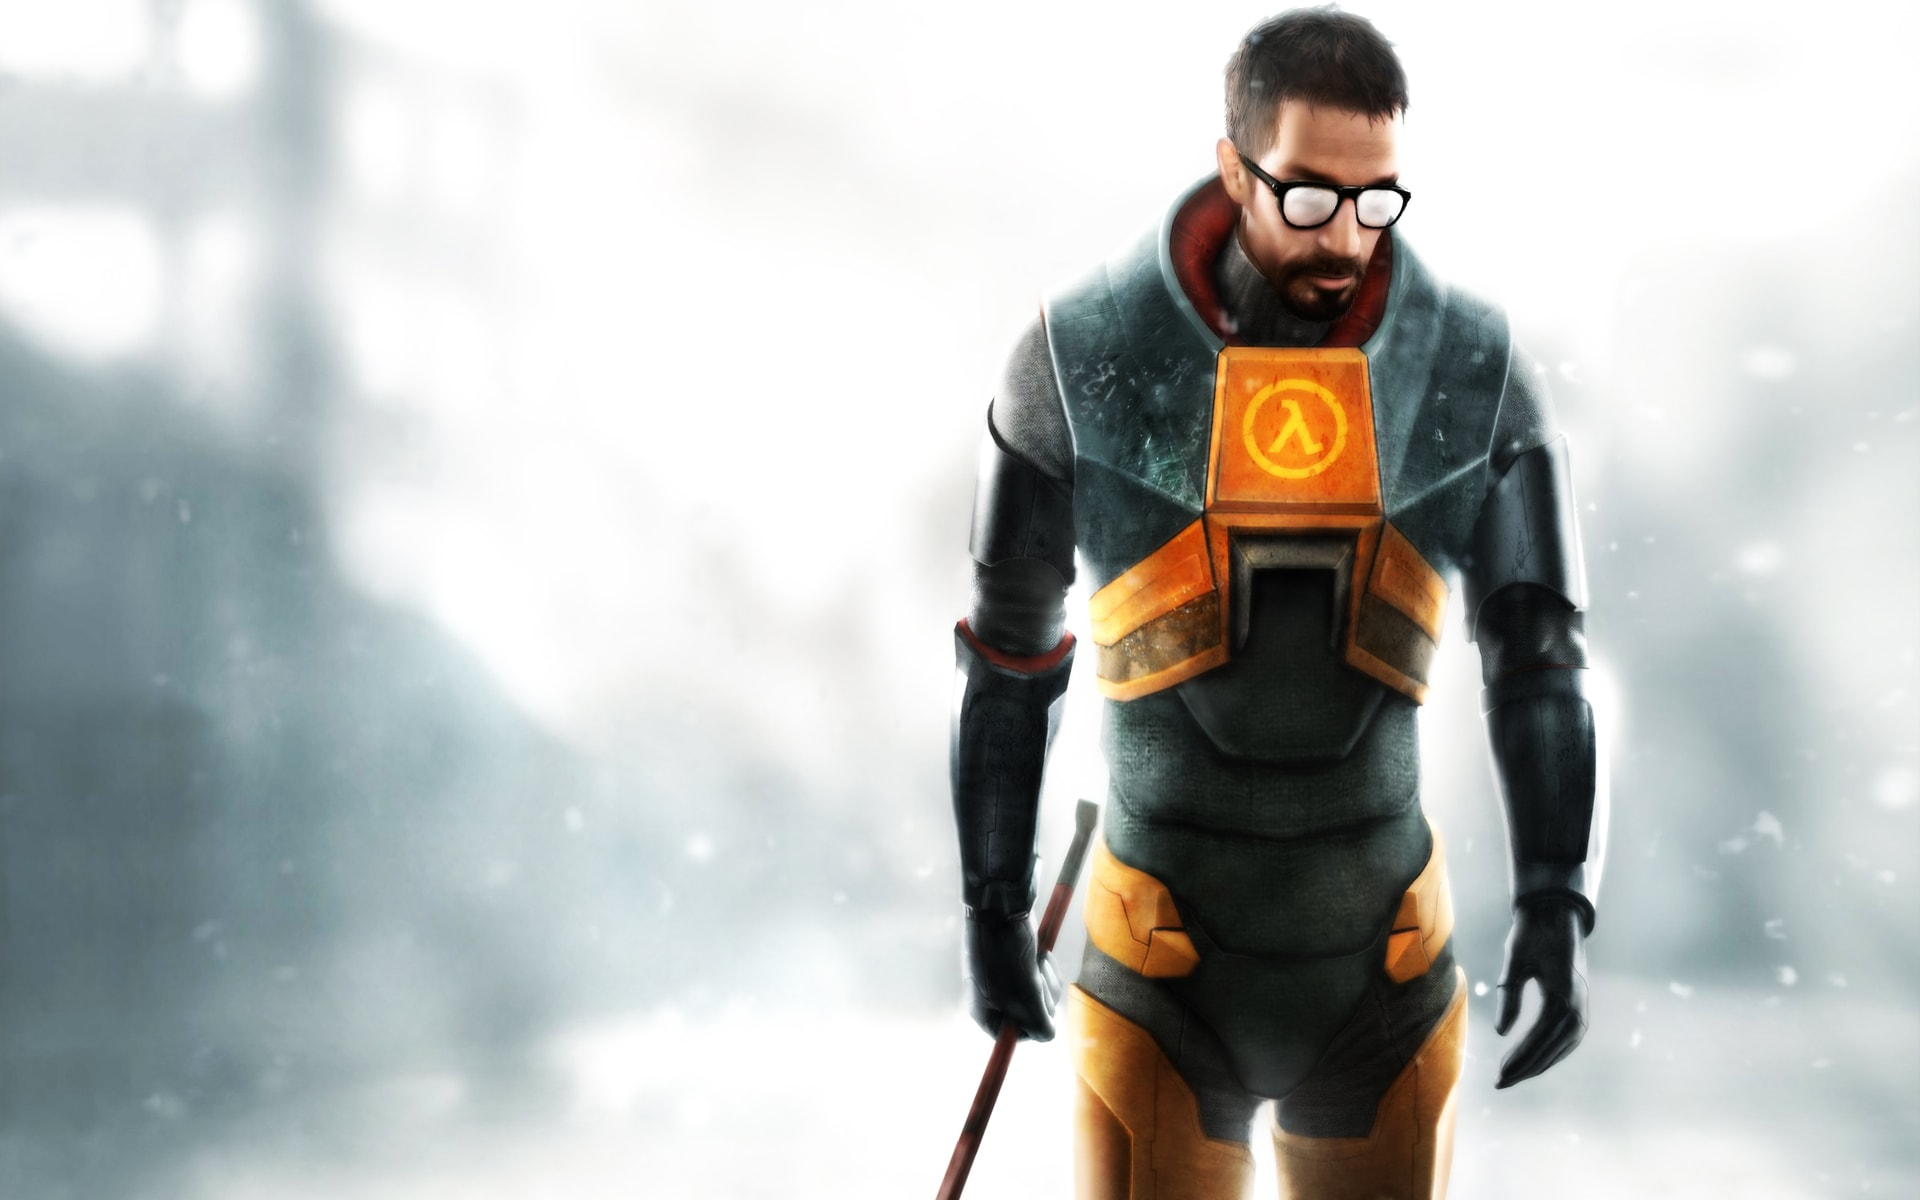 Half-Life 2 Wallpapers